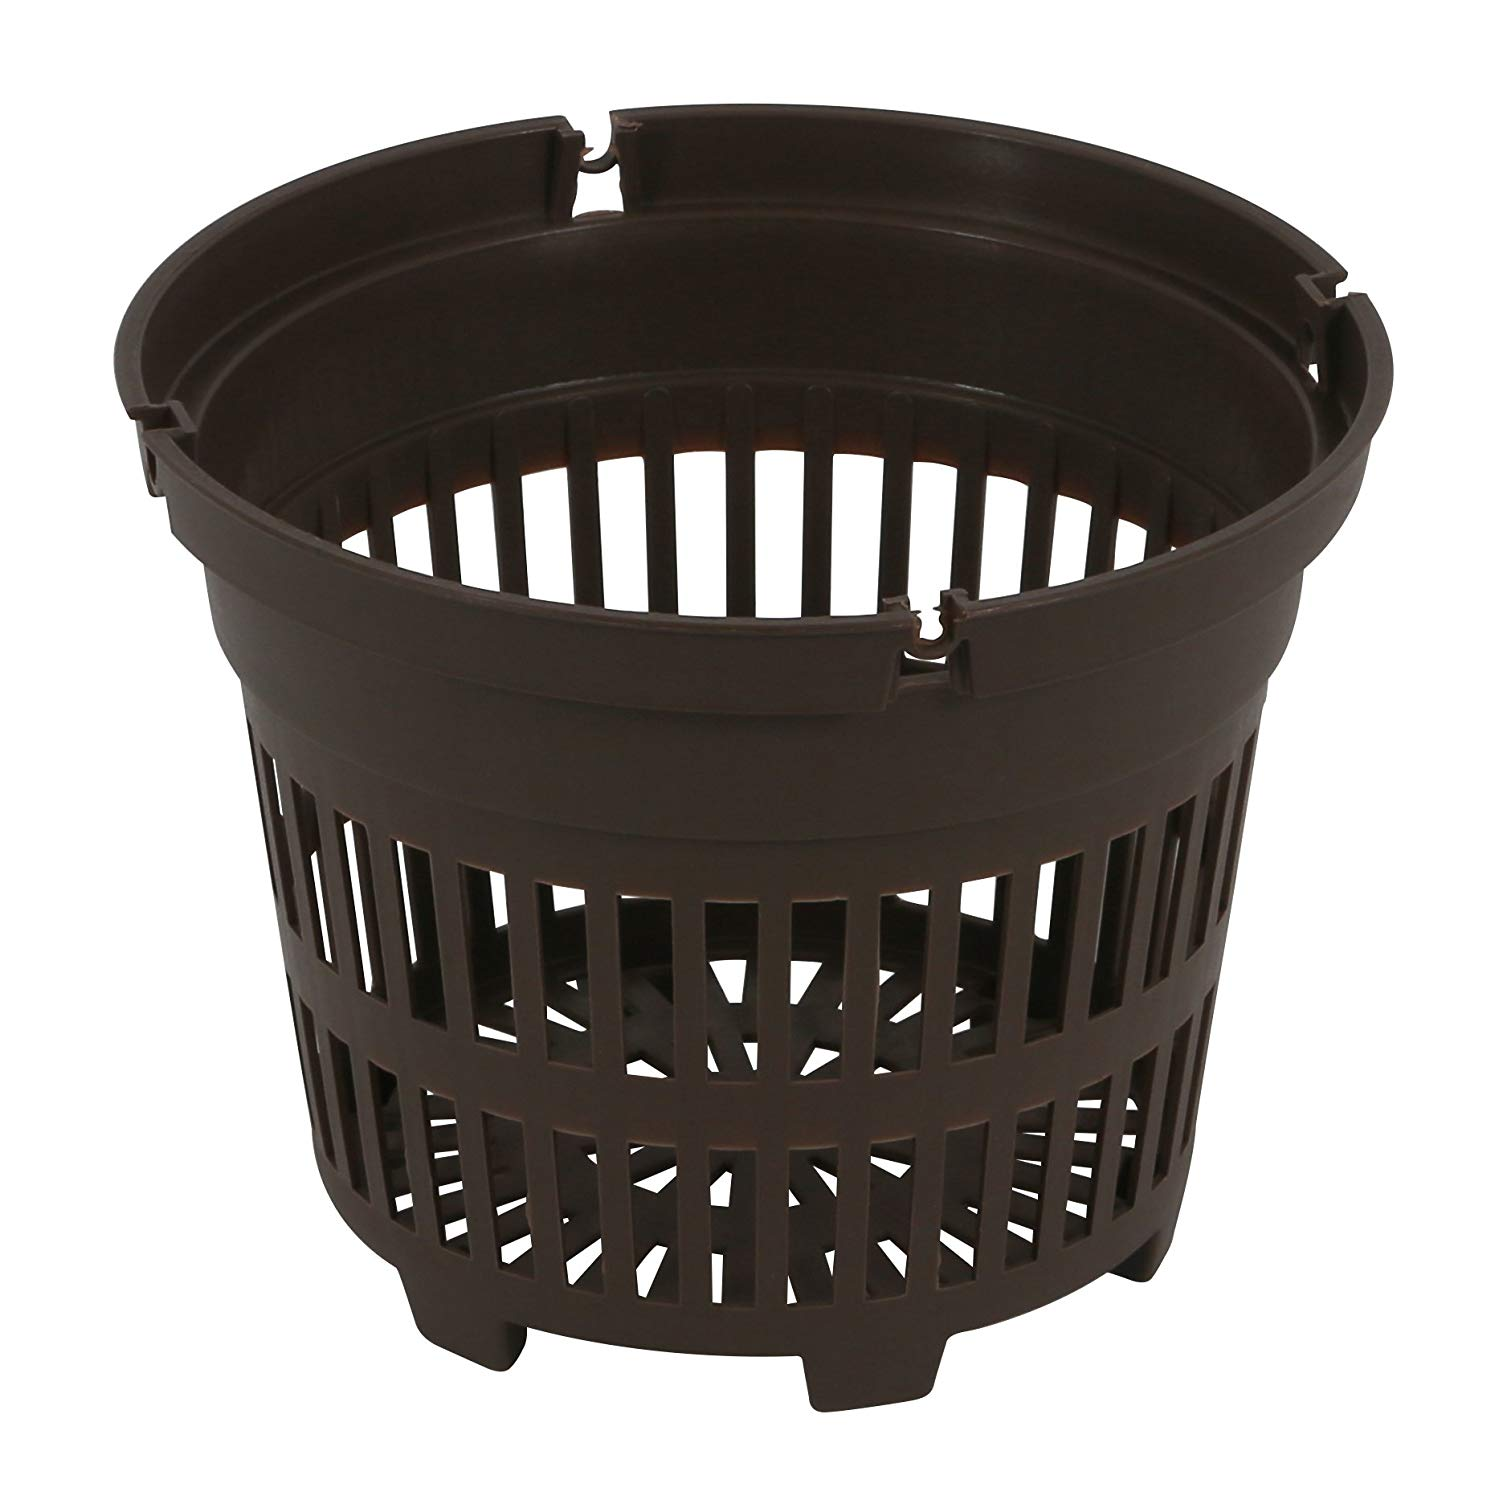 Round Net Pots 6 inch, Brown